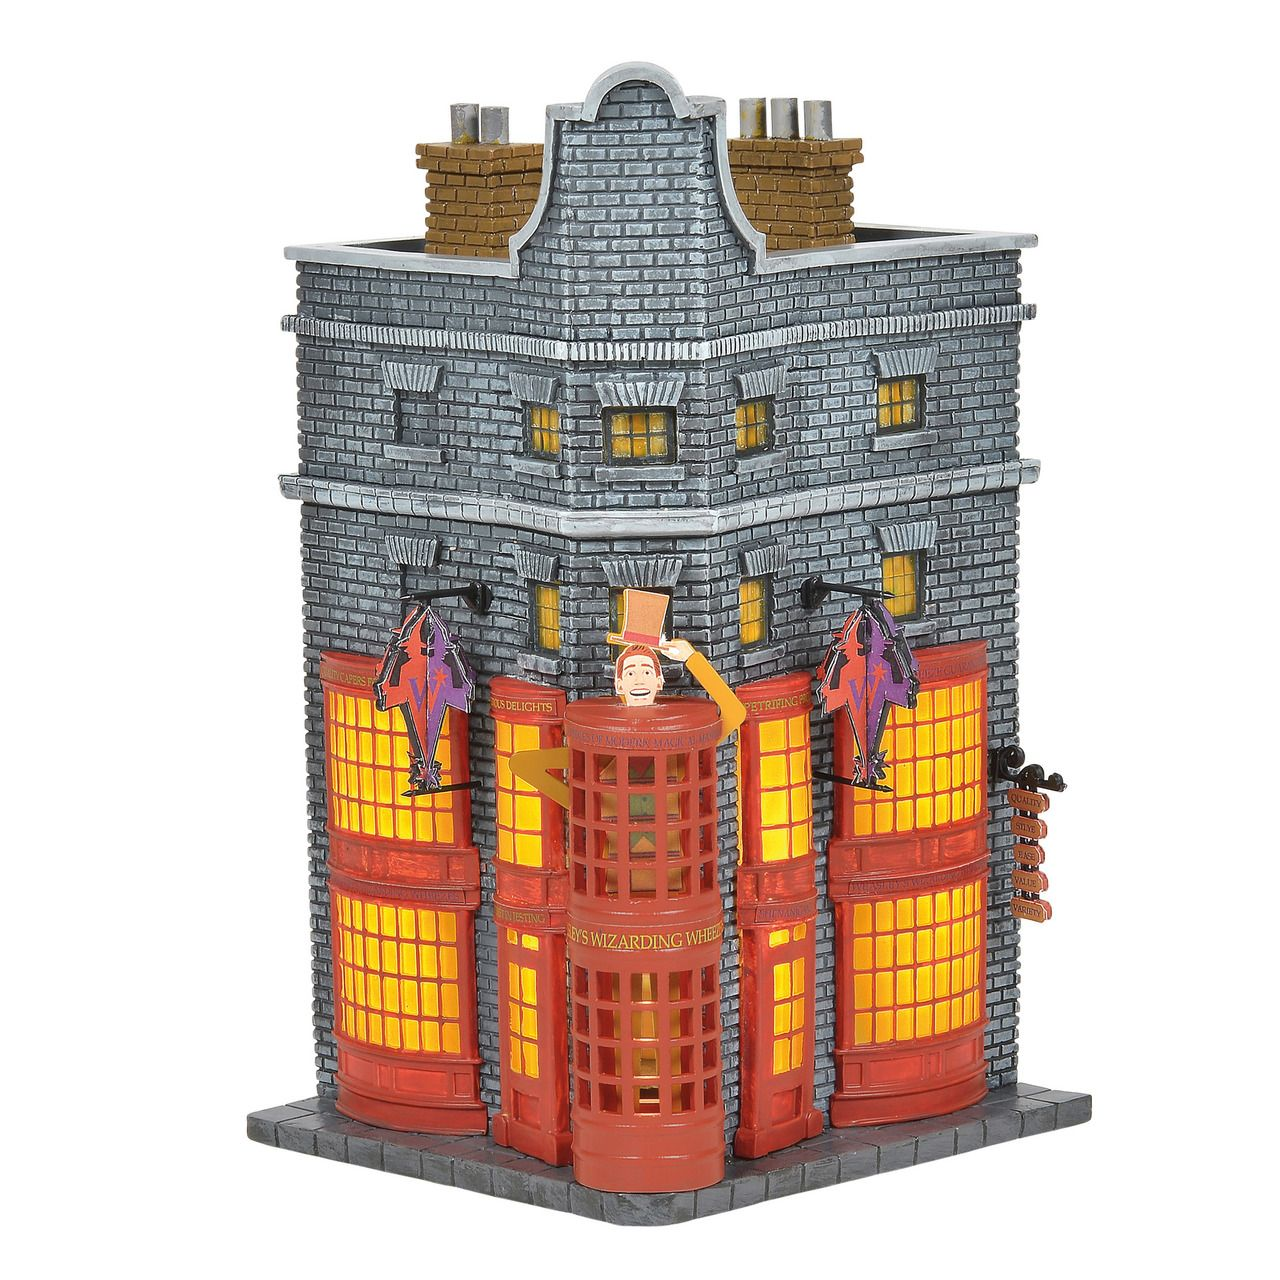 Department 56 Harry Potter Village Diagon Alley Midyear 2019 Set 4062303 #department56